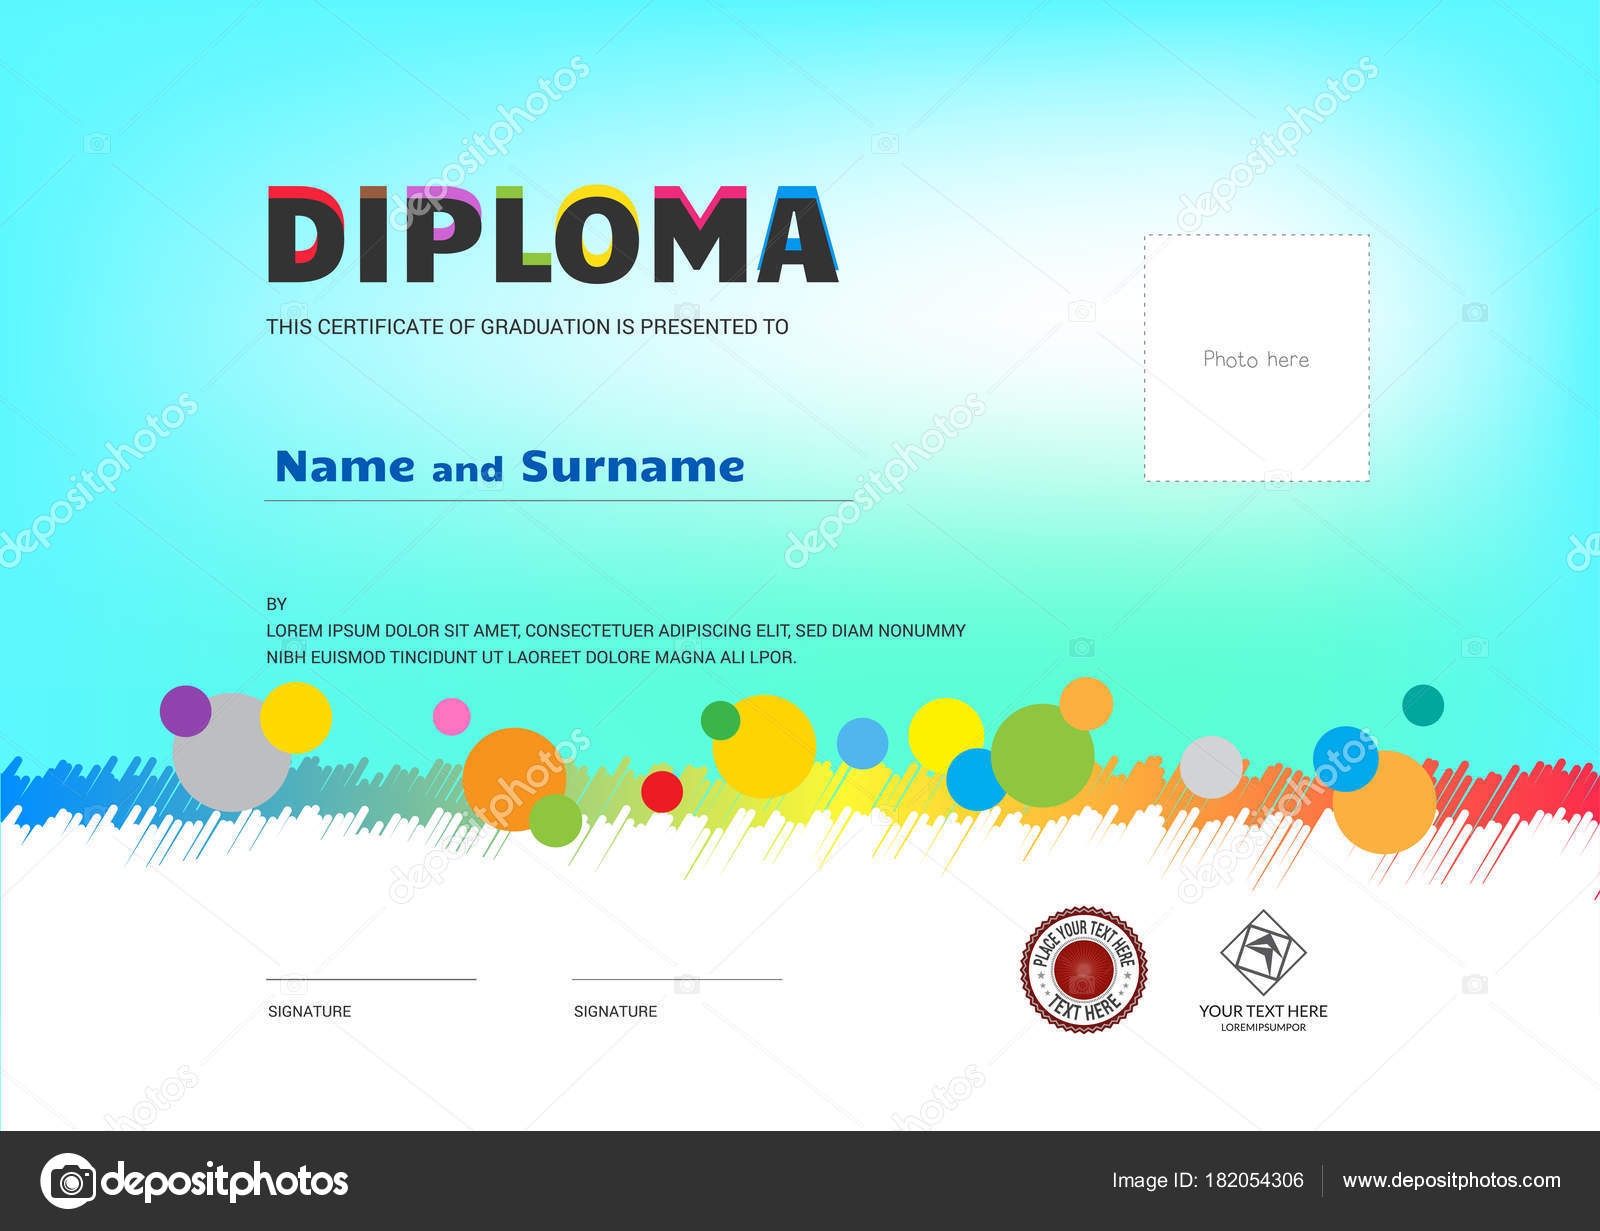 Vector Summer Camp Certificate  Kids Summer Camp Diploma intended for Best Certificate For Summer Camp Free Templates 2020